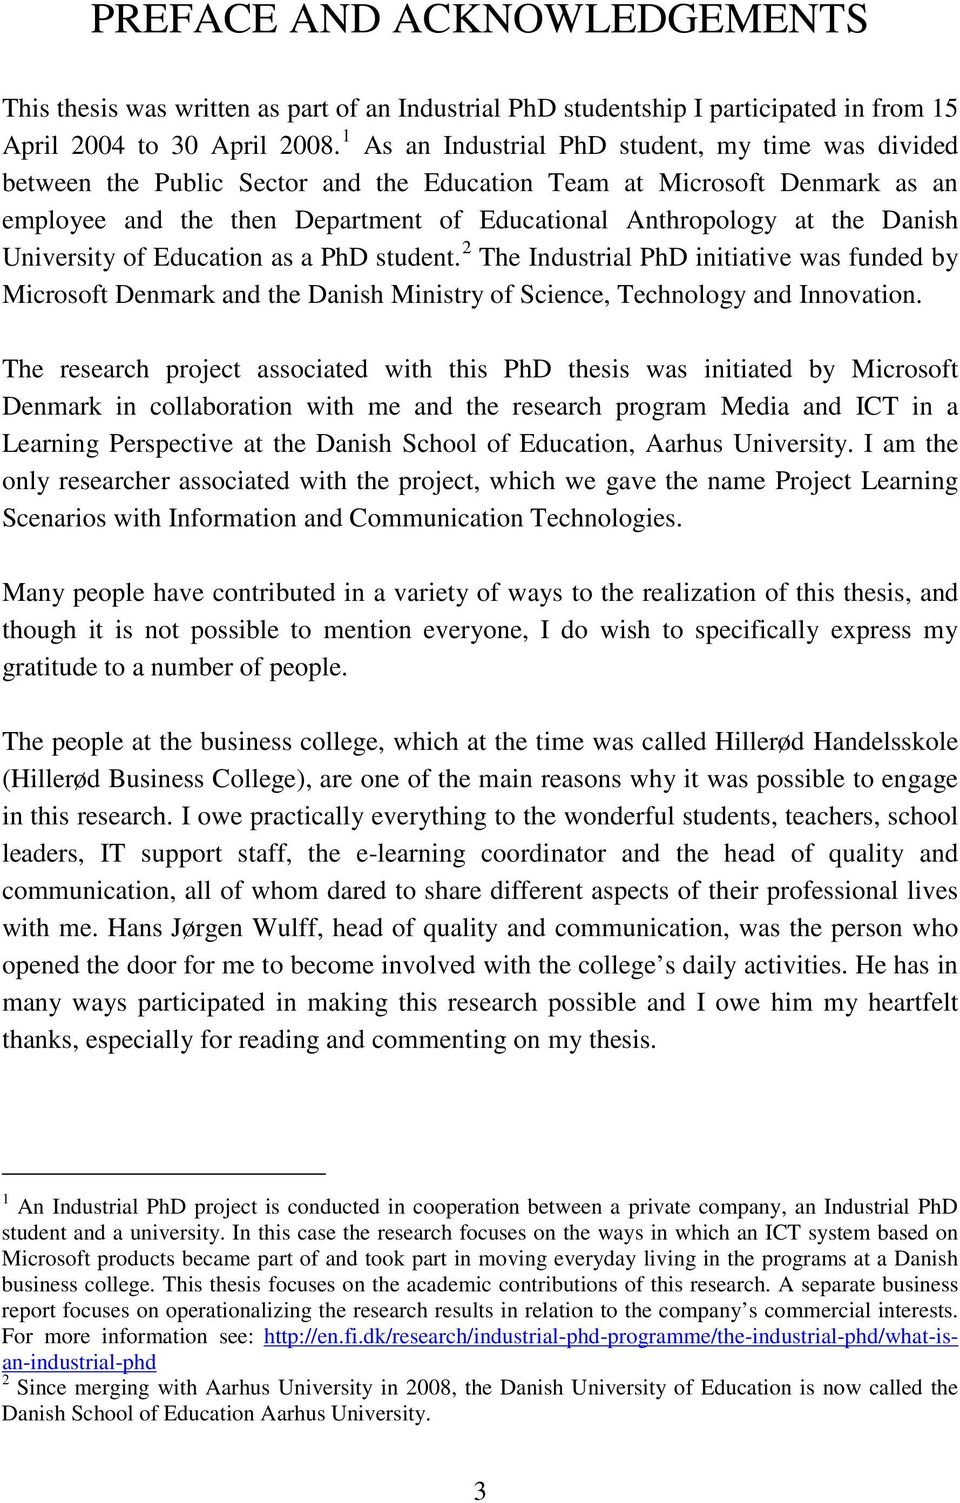 Danish University of Education as a PhD student. 2 The Industrial PhD initiative was funded by Microsoft Denmark and the Danish Ministry of Science, Technology and Innovation.